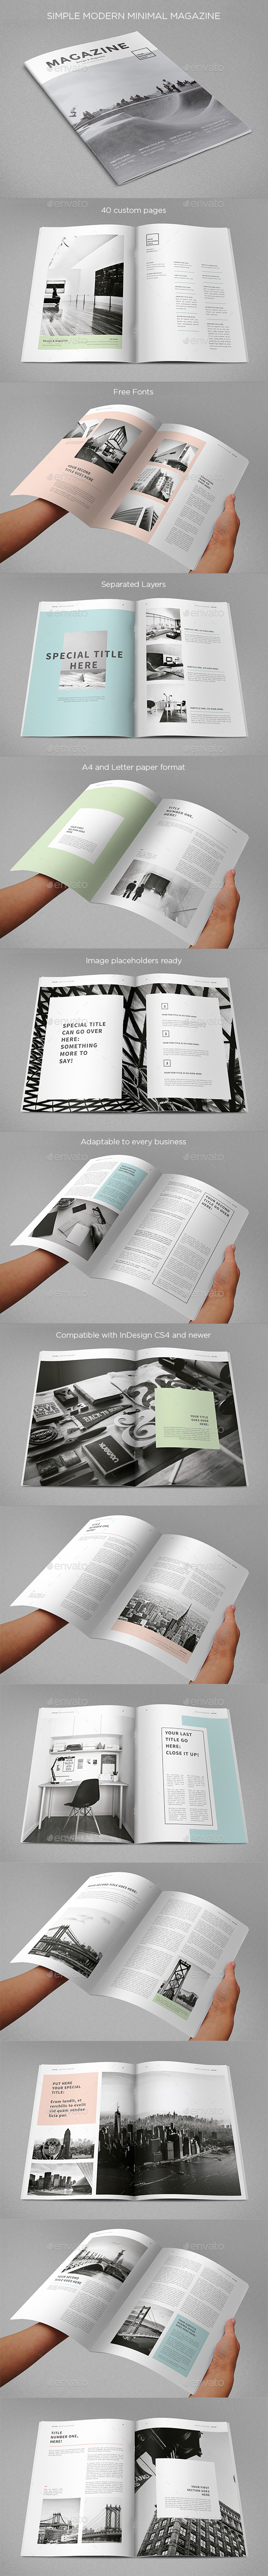 Simple Minimal Clean Magazine - Magazines Print Templates